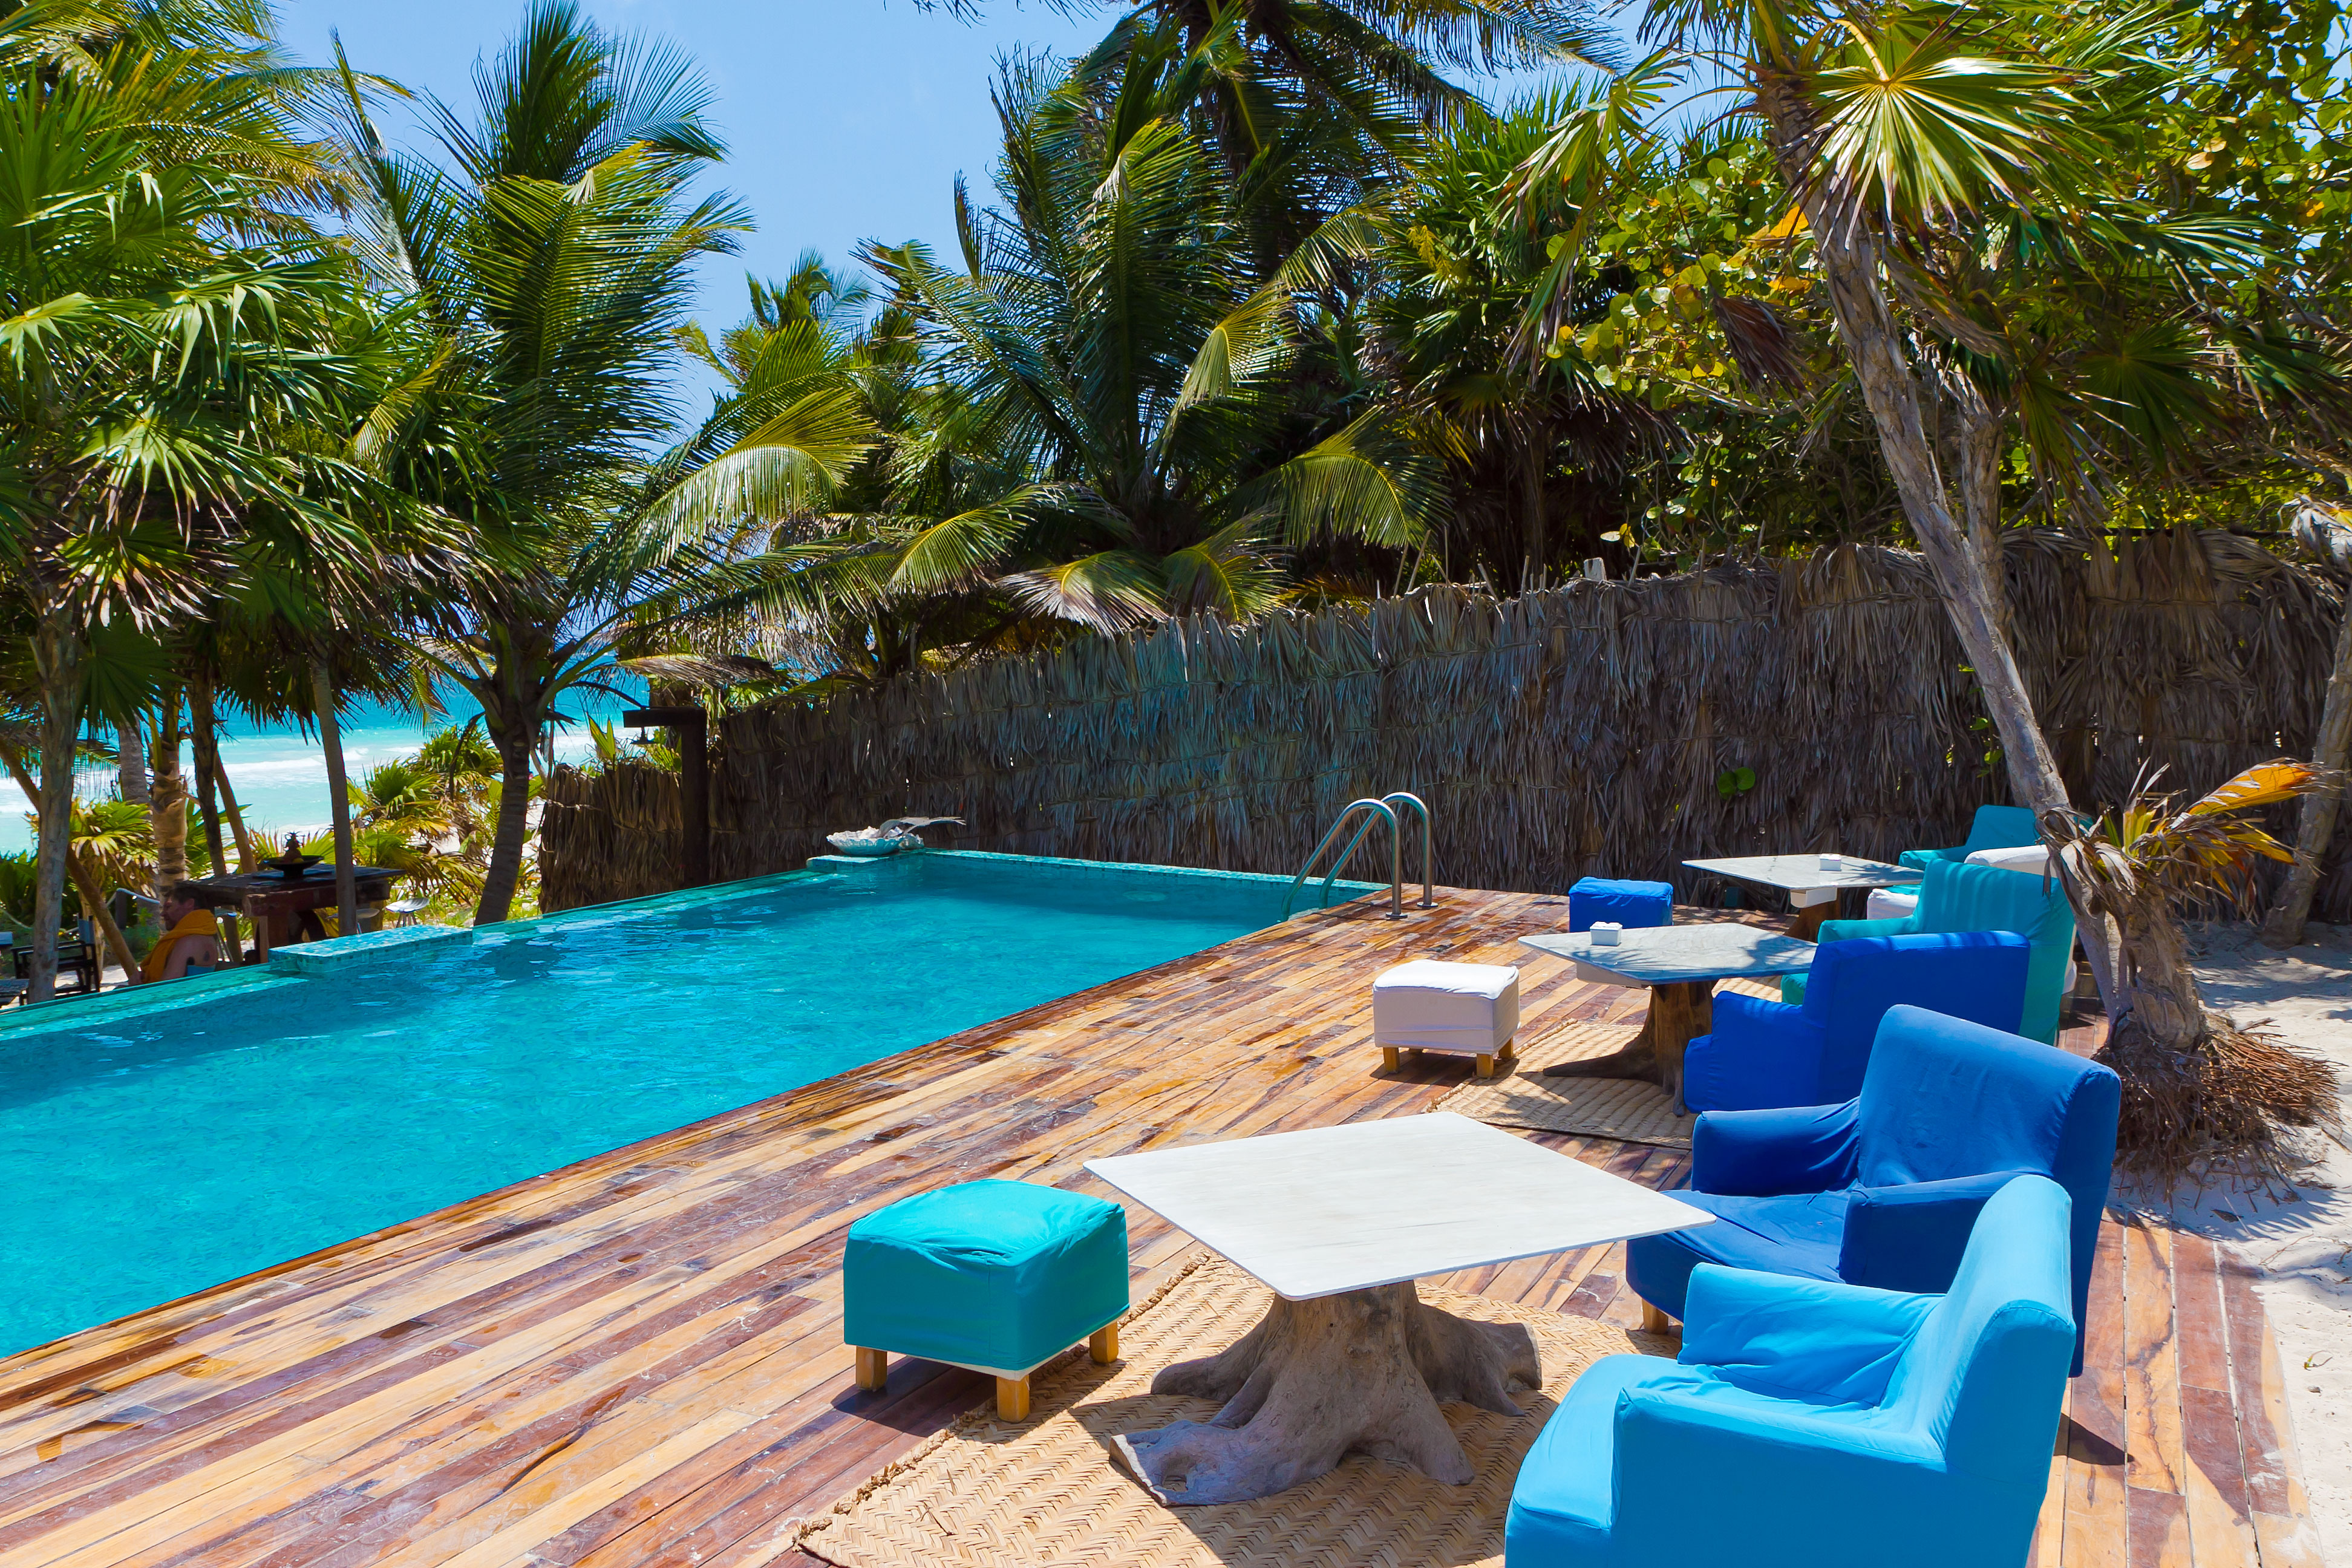 Be Tulum, the pool